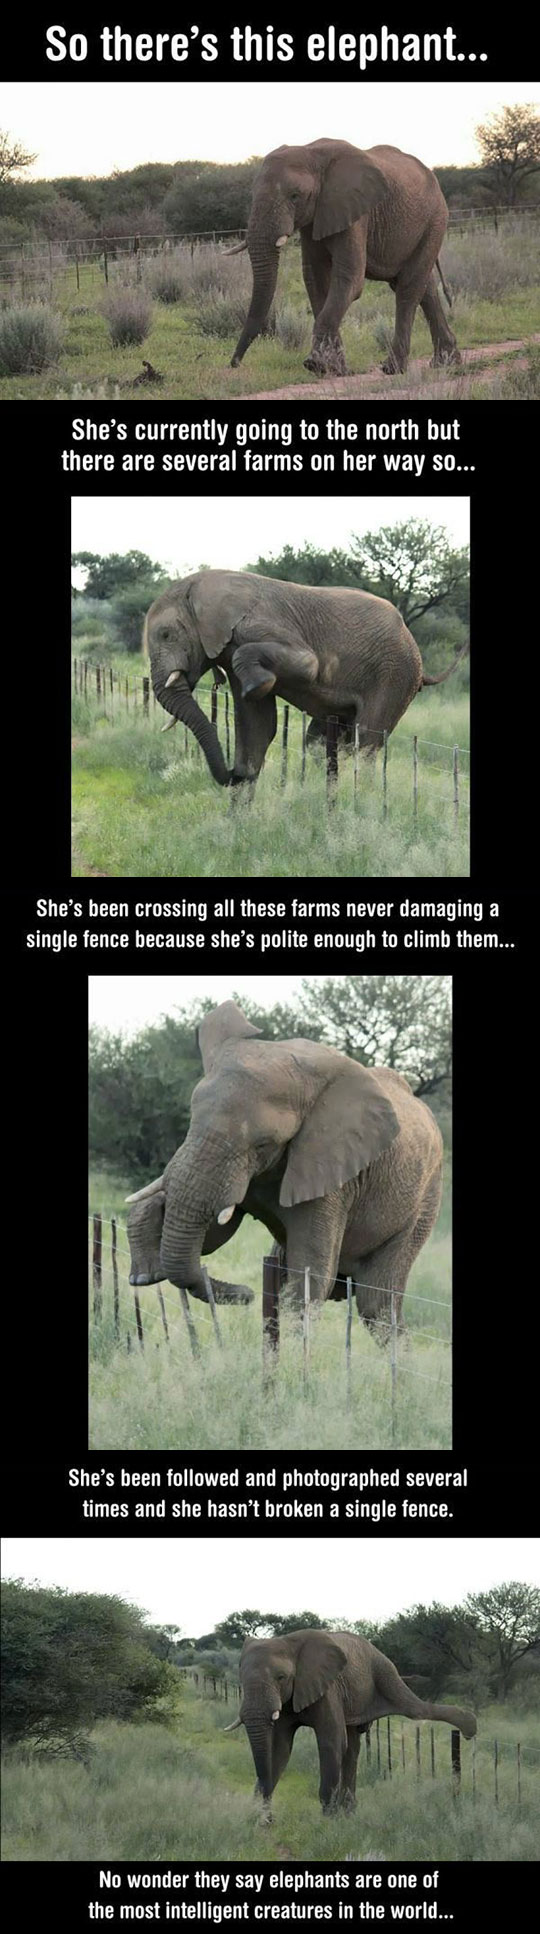 This Elephant Is Special